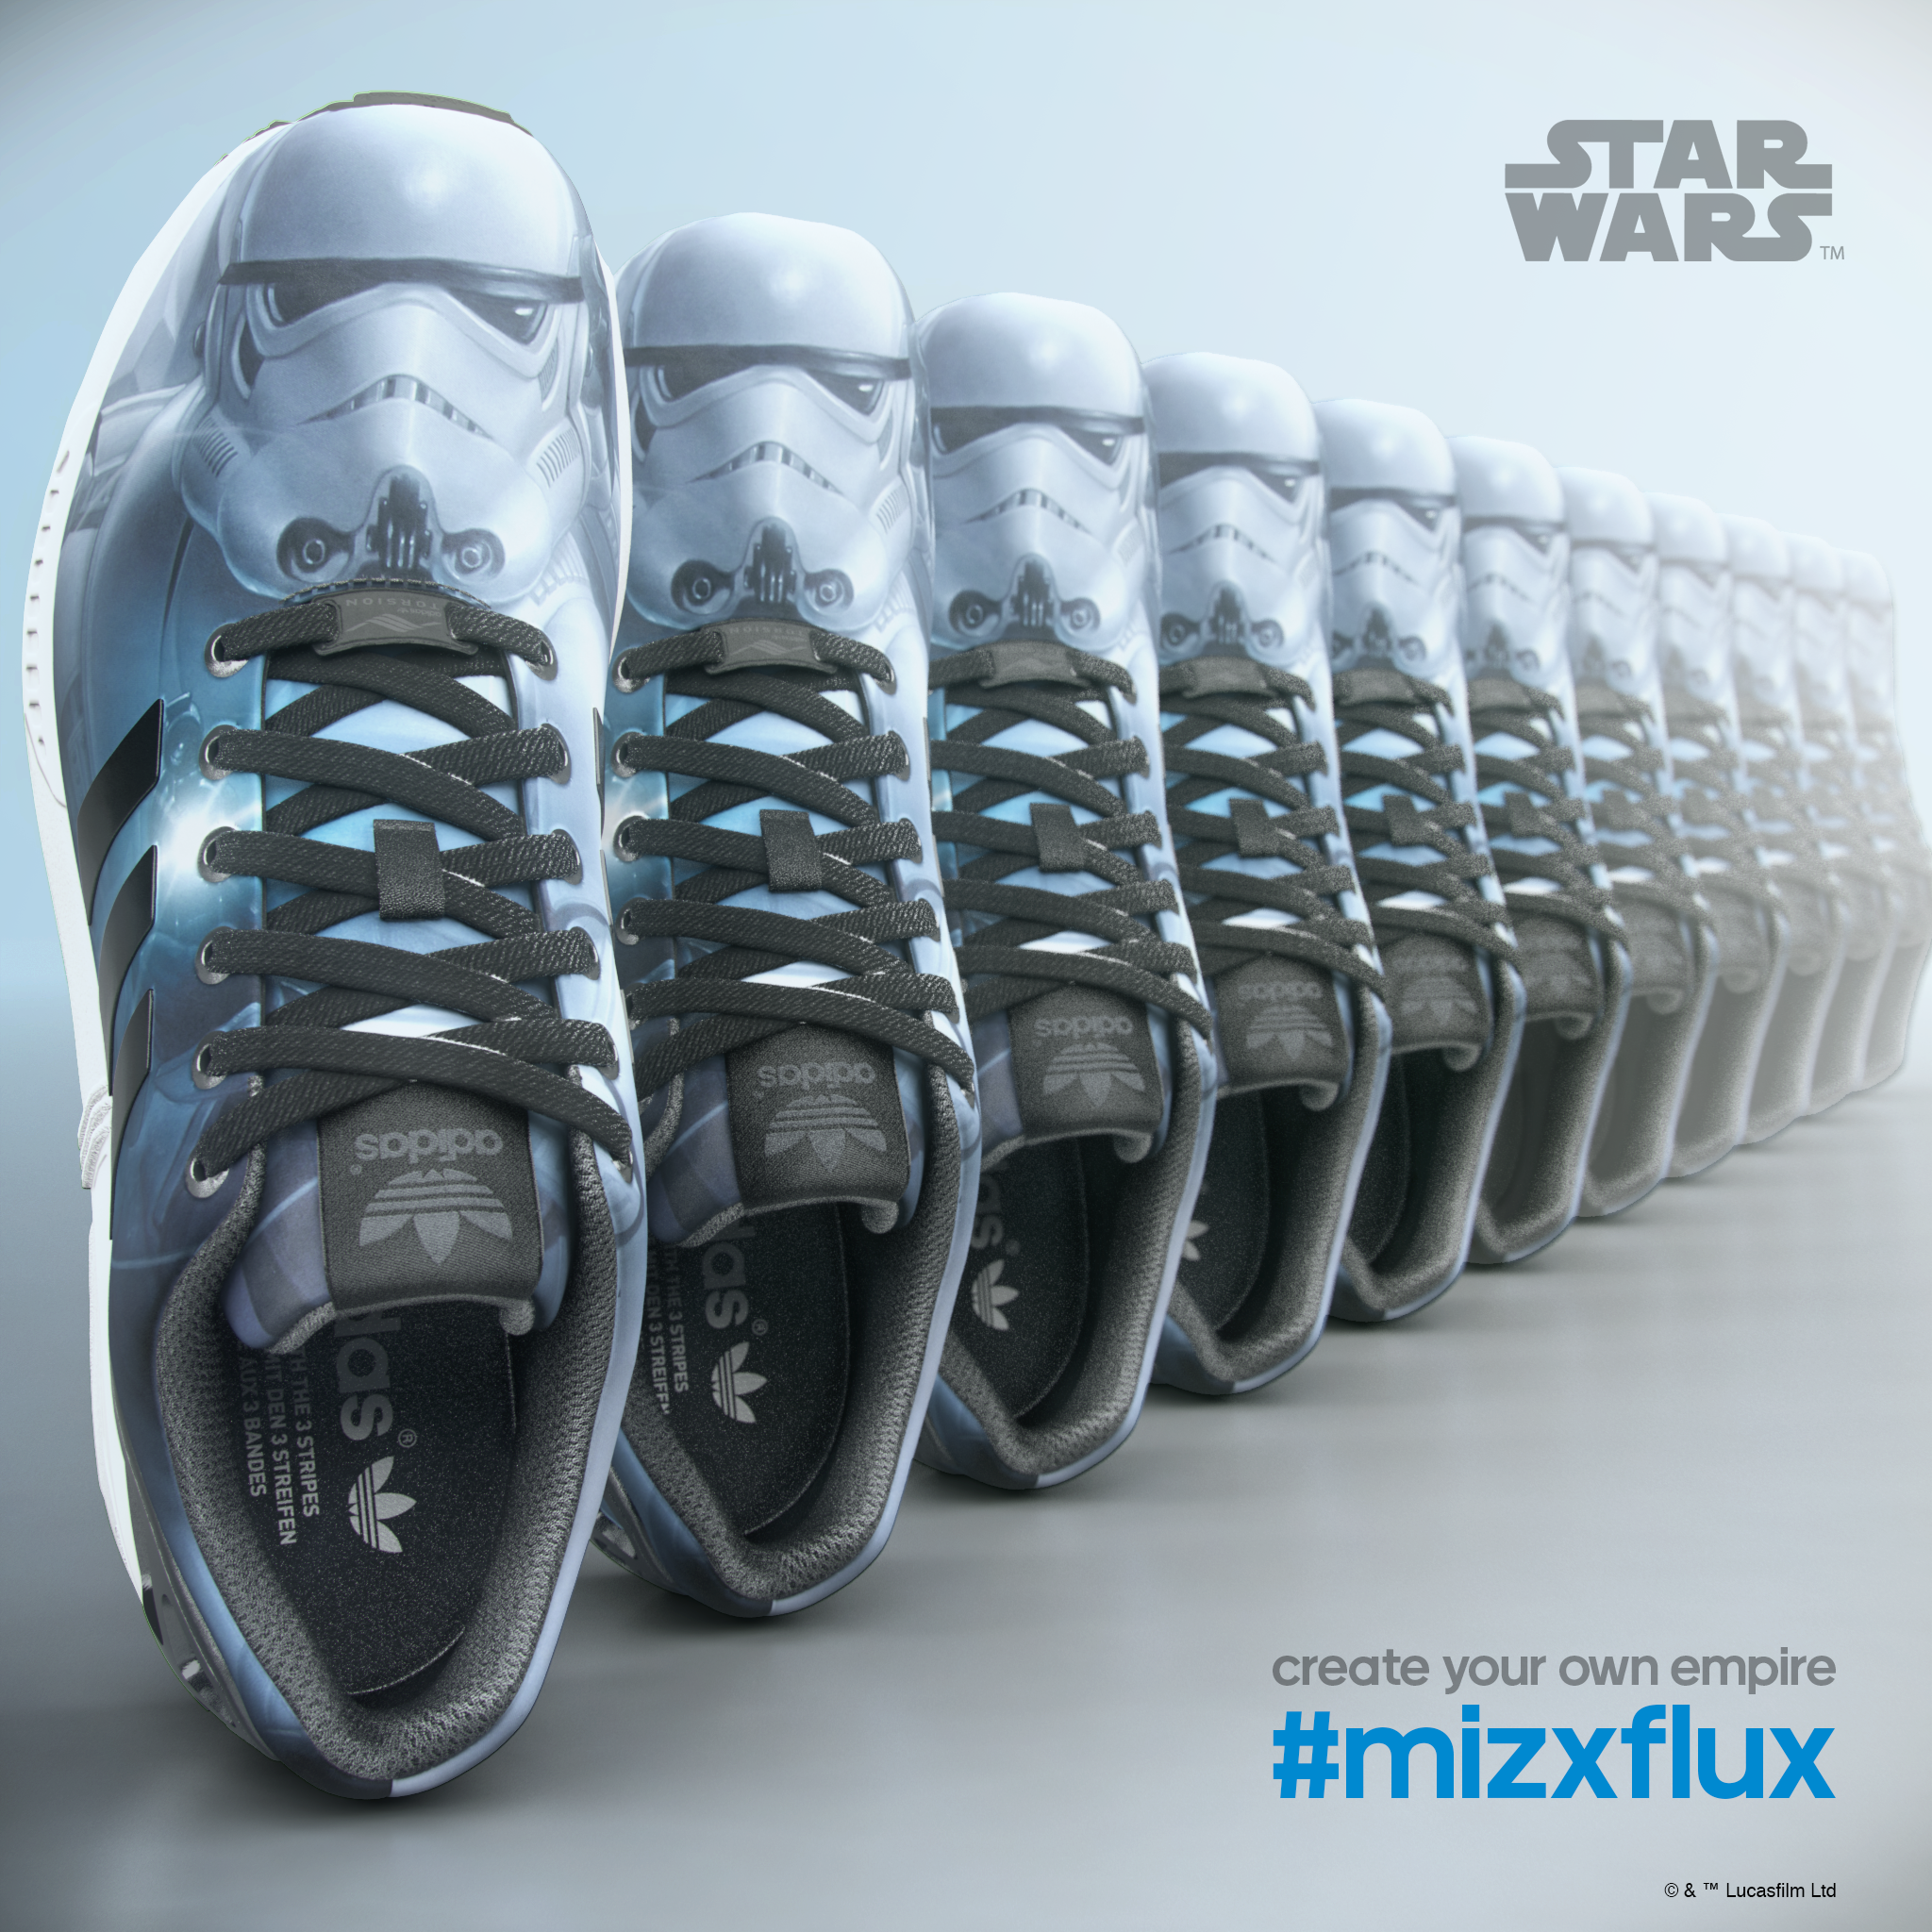 The Force is strong with this week's #kickoftheweek